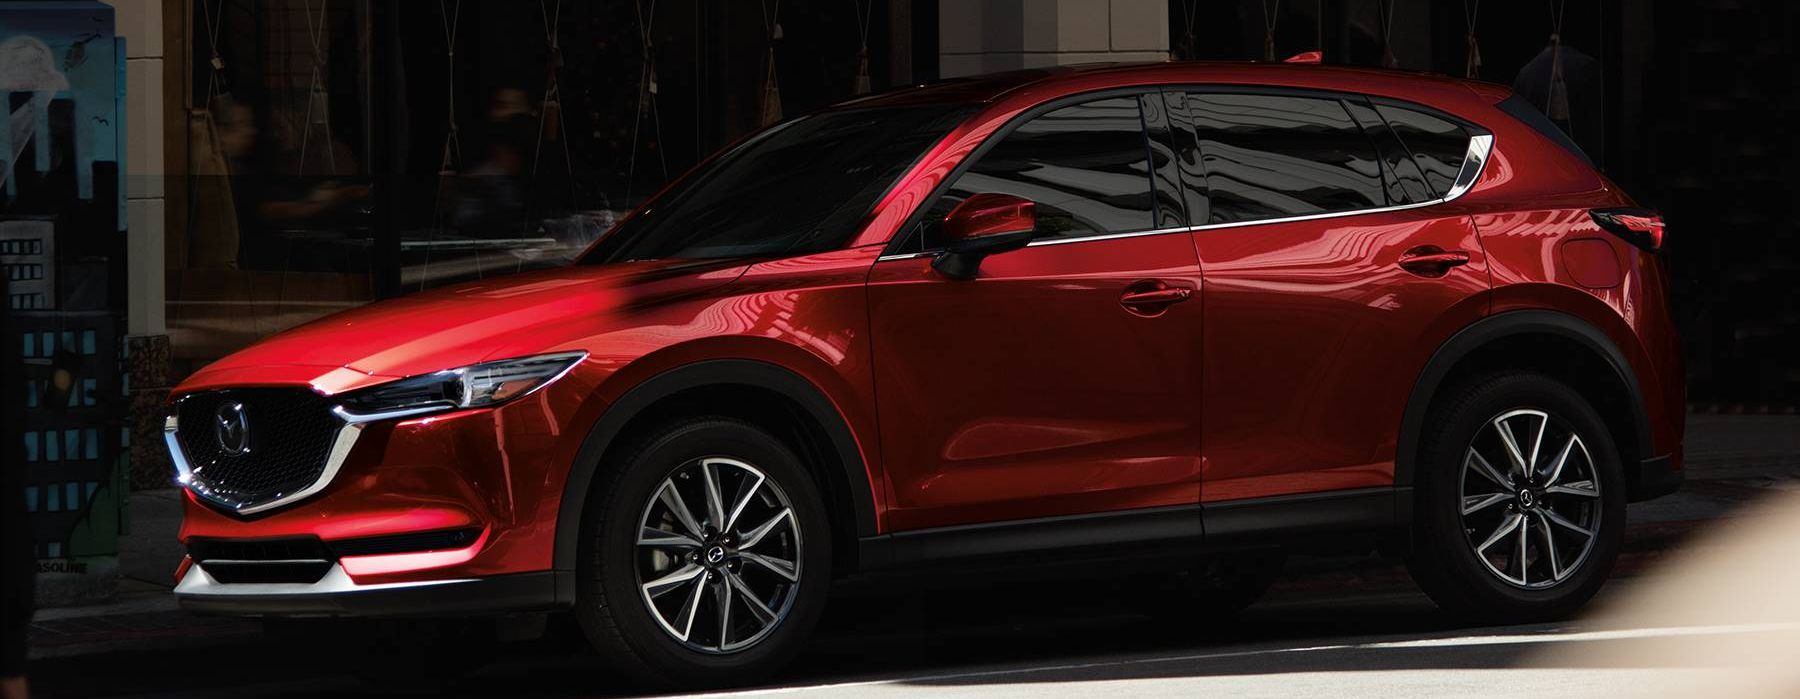 2018 Mazda CX-5 Leasing near Sacramento, CA